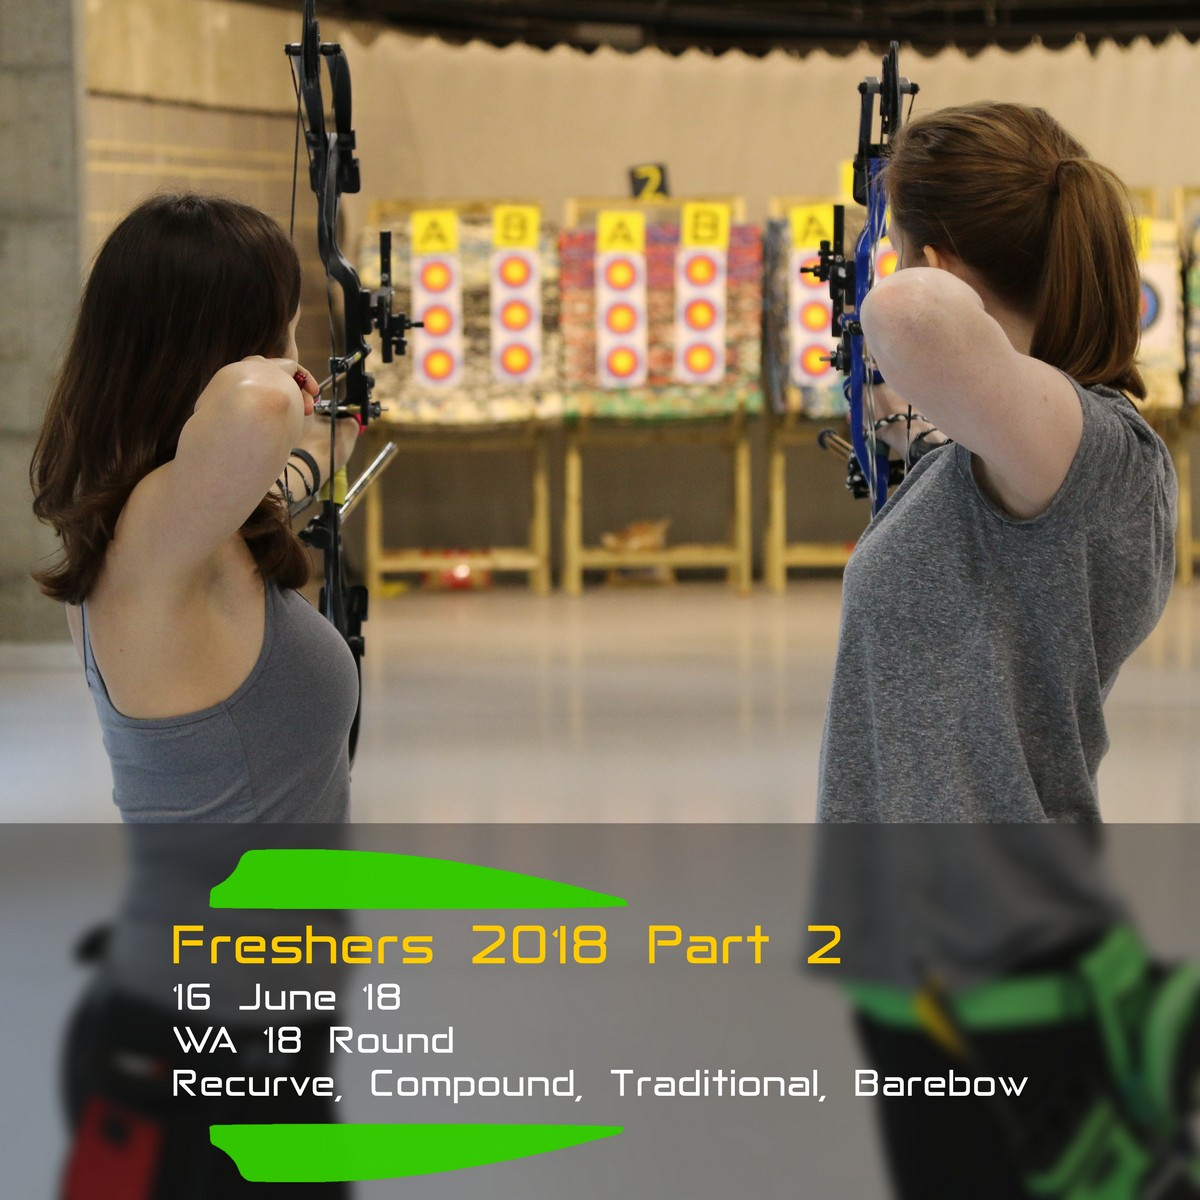 Archery Fit: Freshers 2018 Part 2